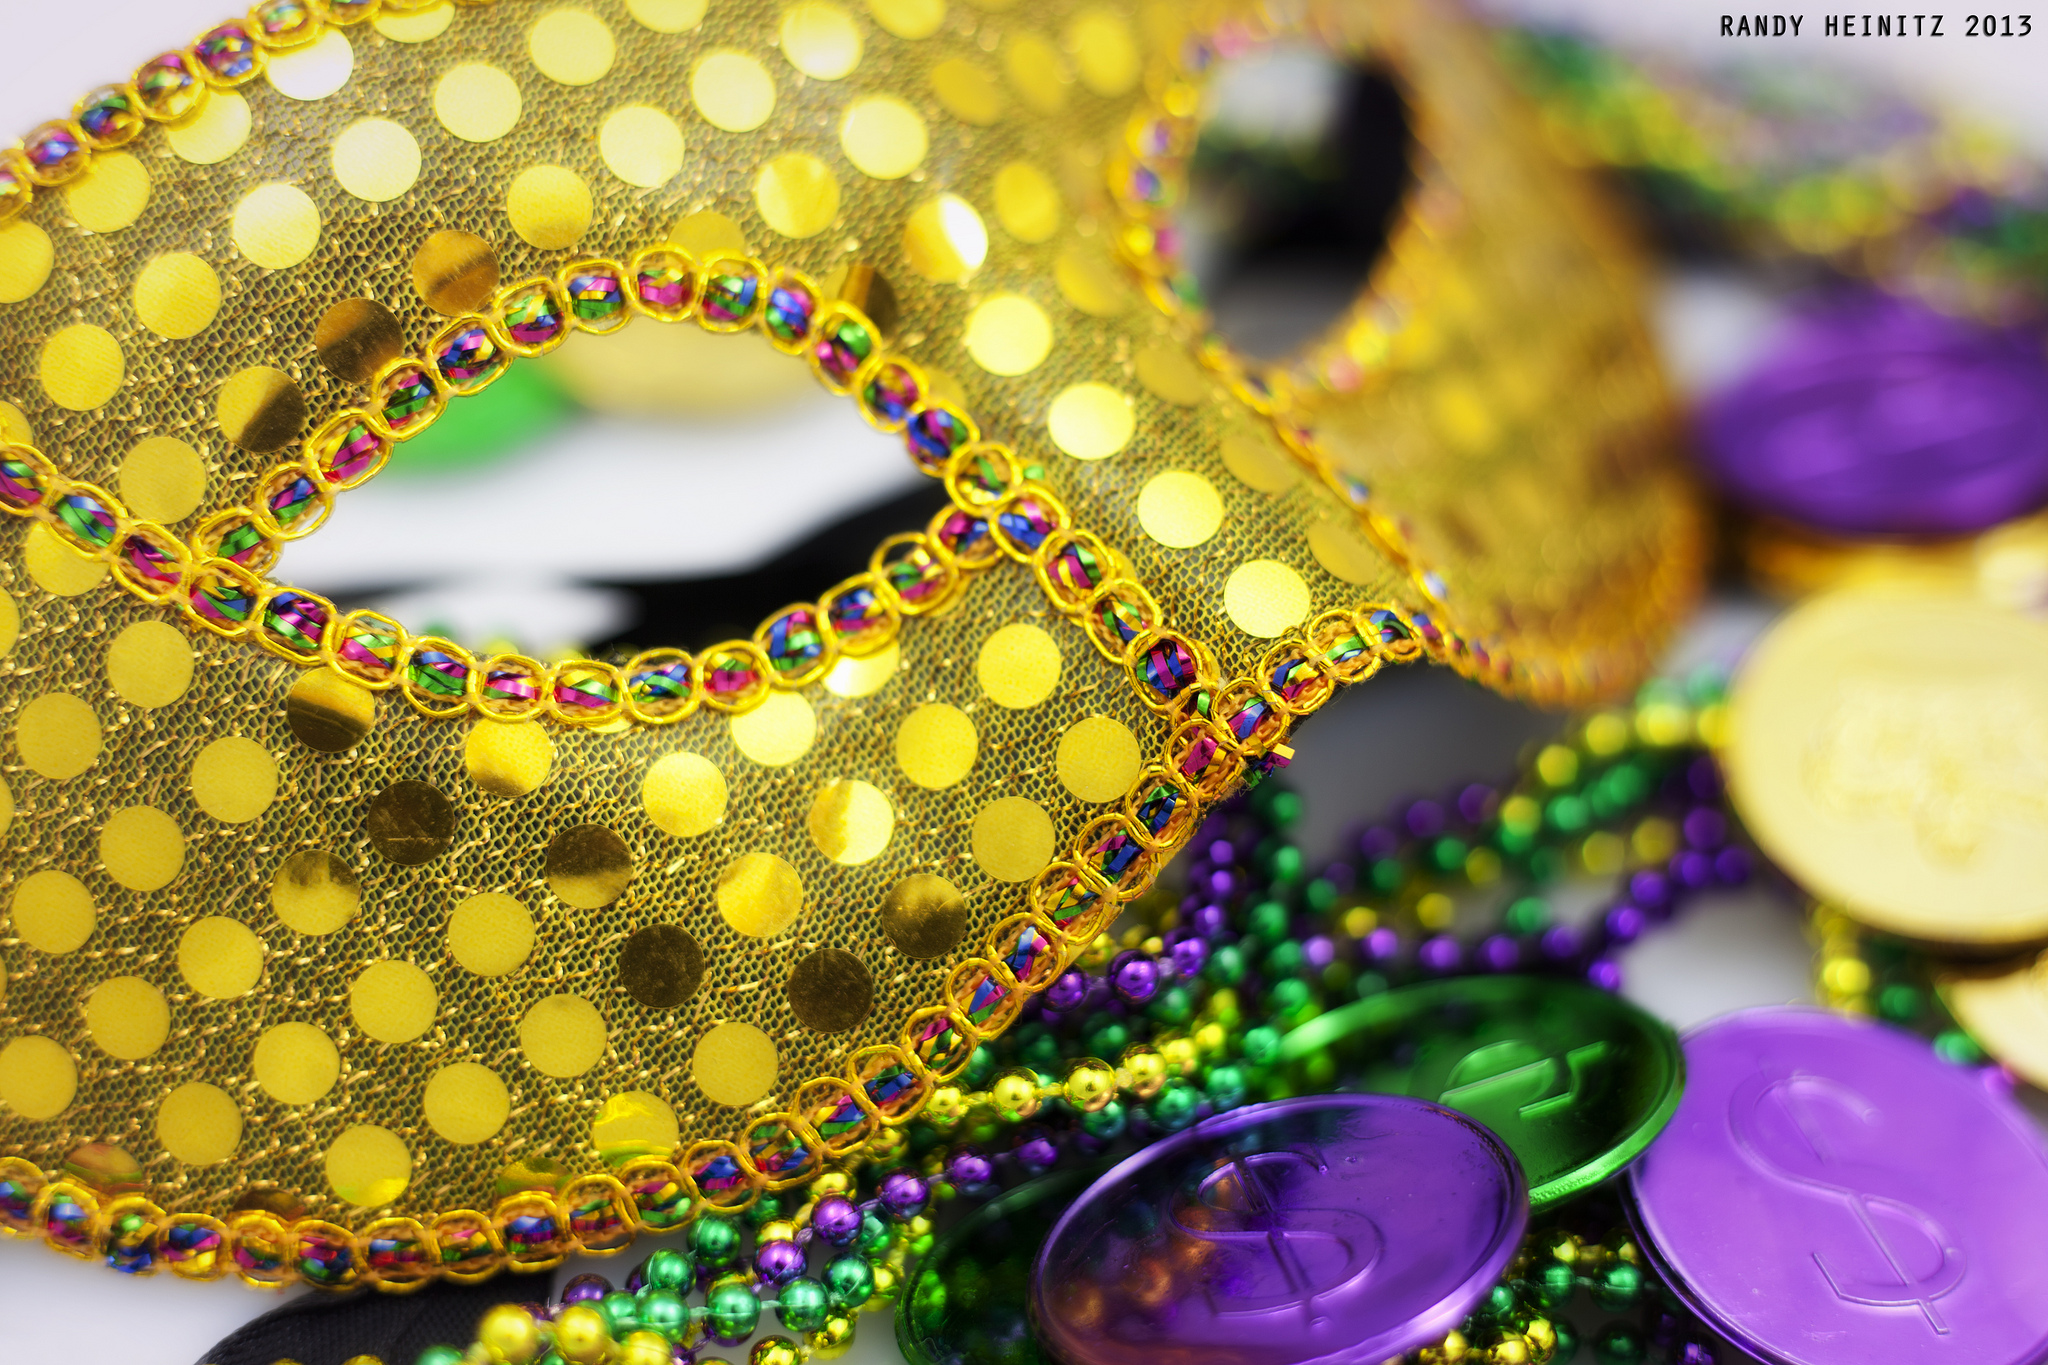 Mardi Gras © Randy Heinitz/Flickr